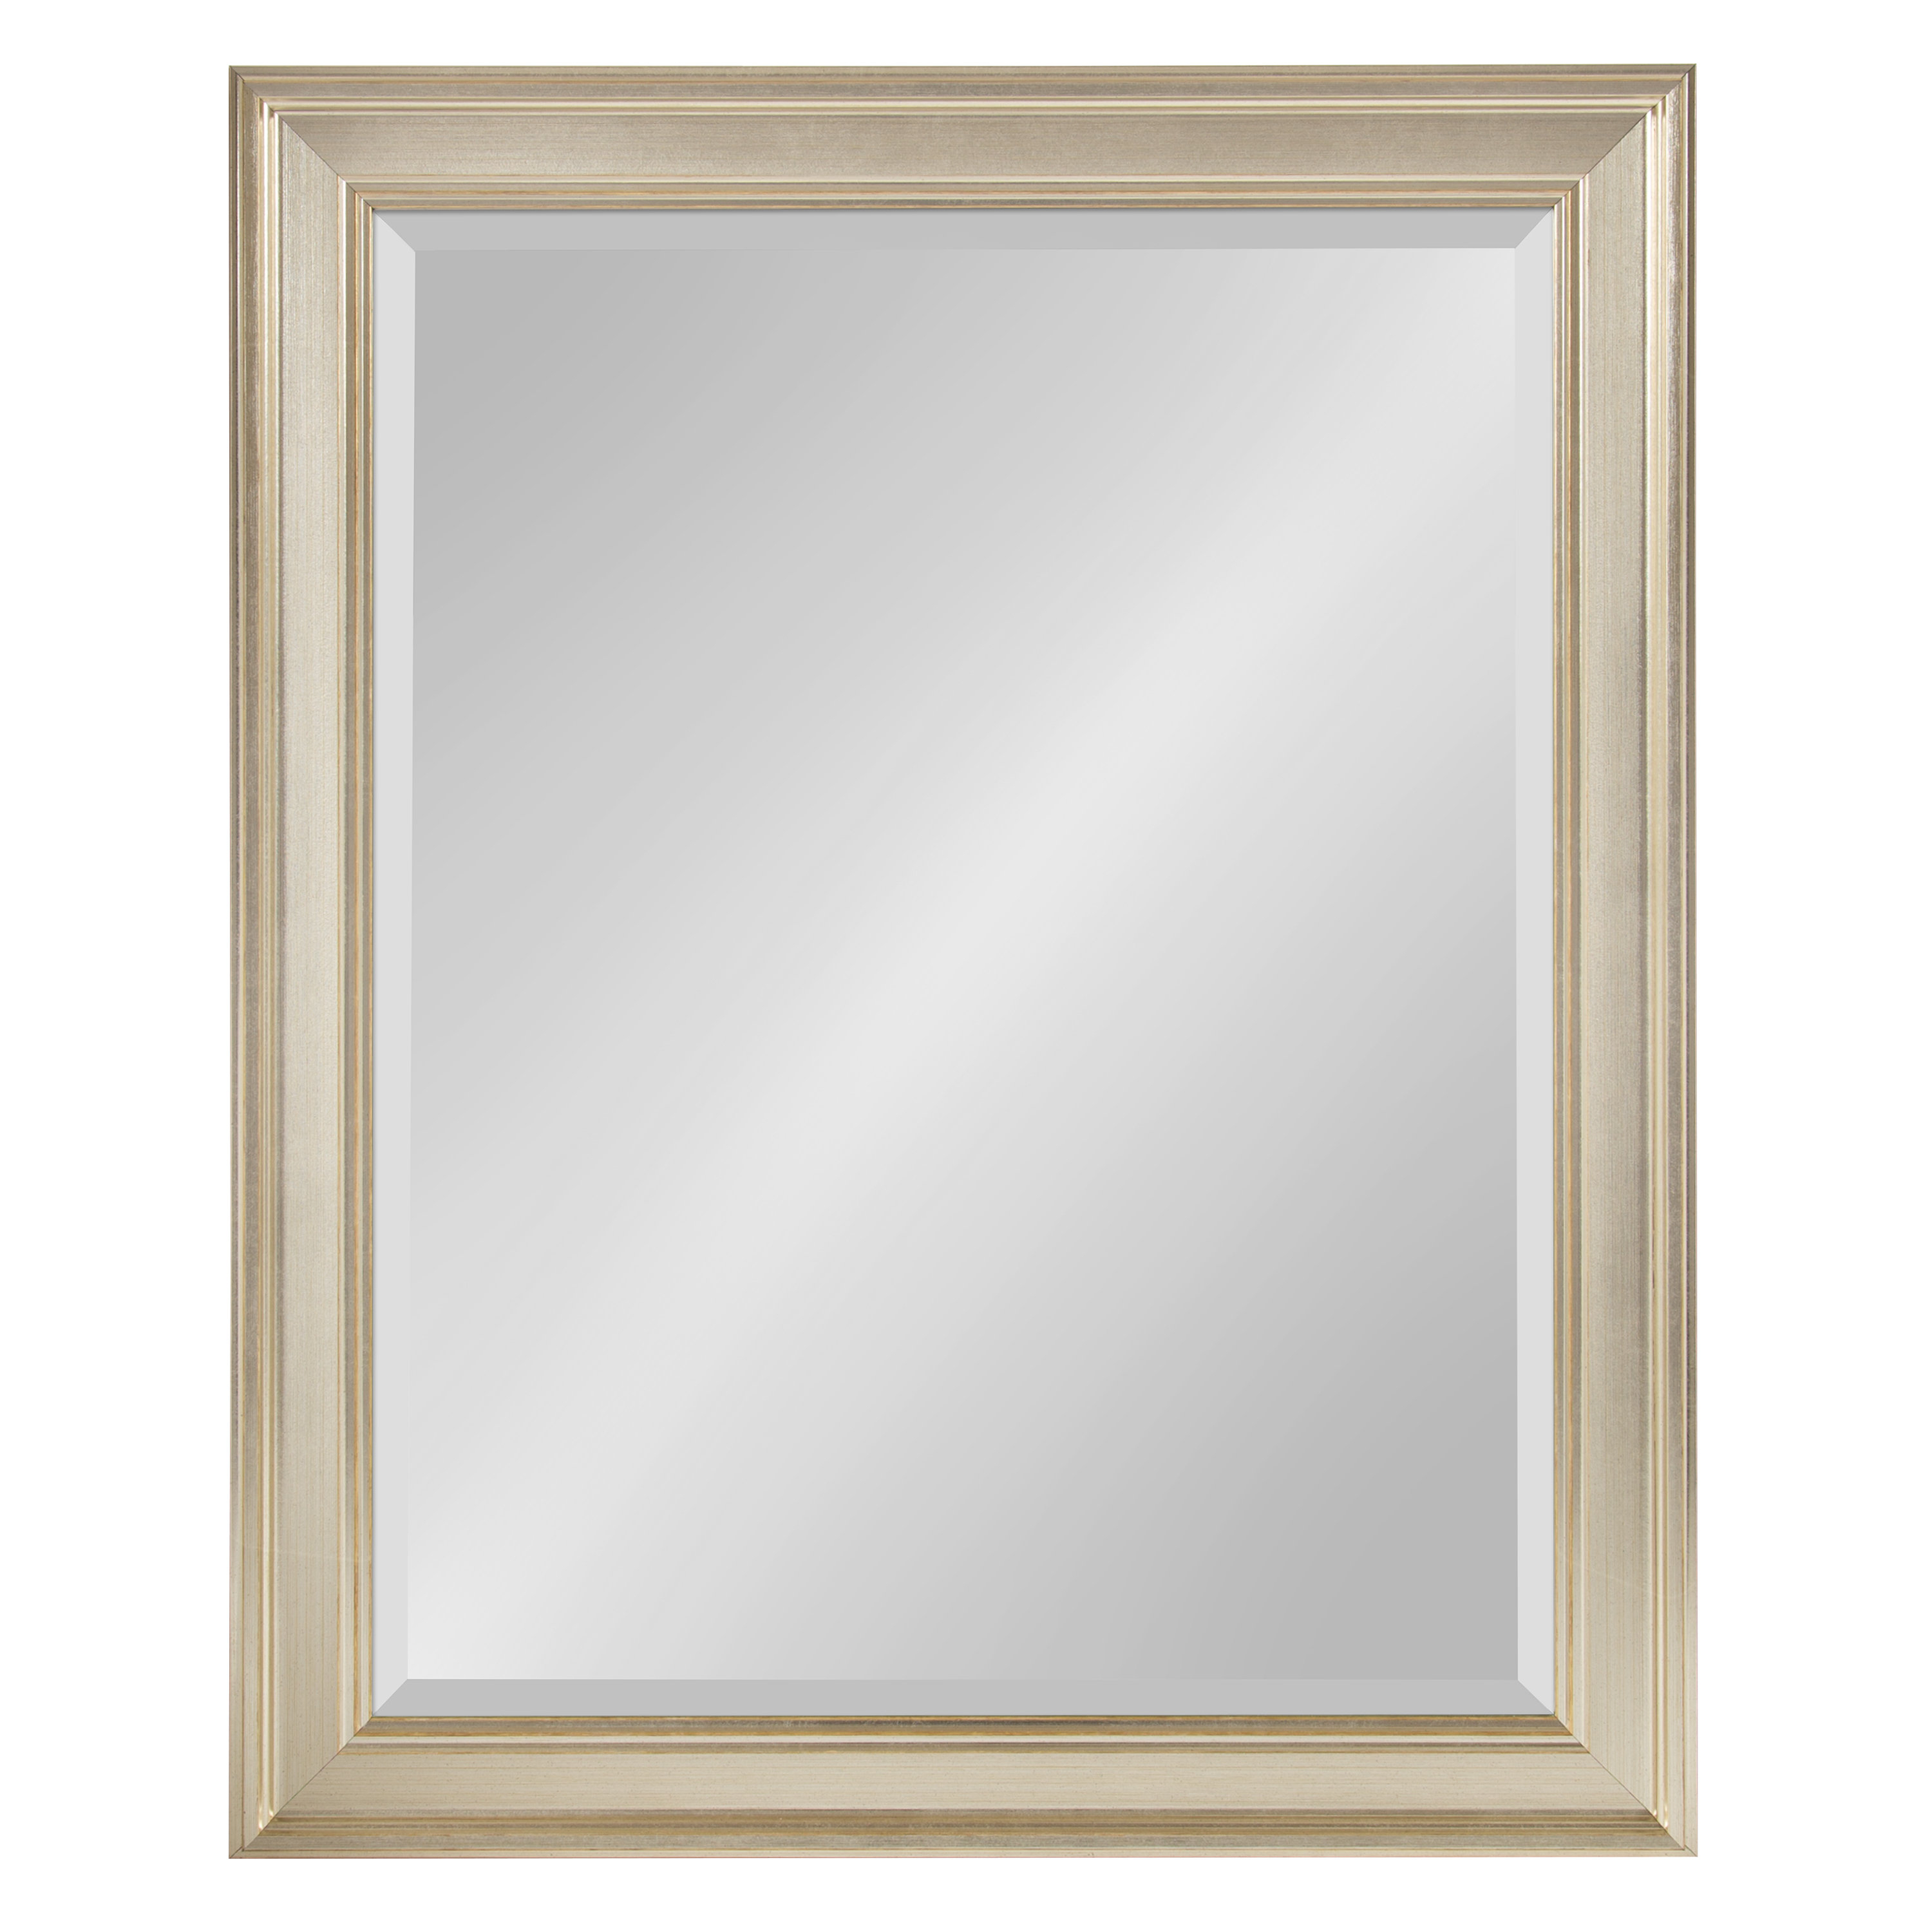 Salter Framed Rectangle Accent Mirror In Dedrick Decorative Framed Modern And Contemporary Wall Mirrors (Image 18 of 20)